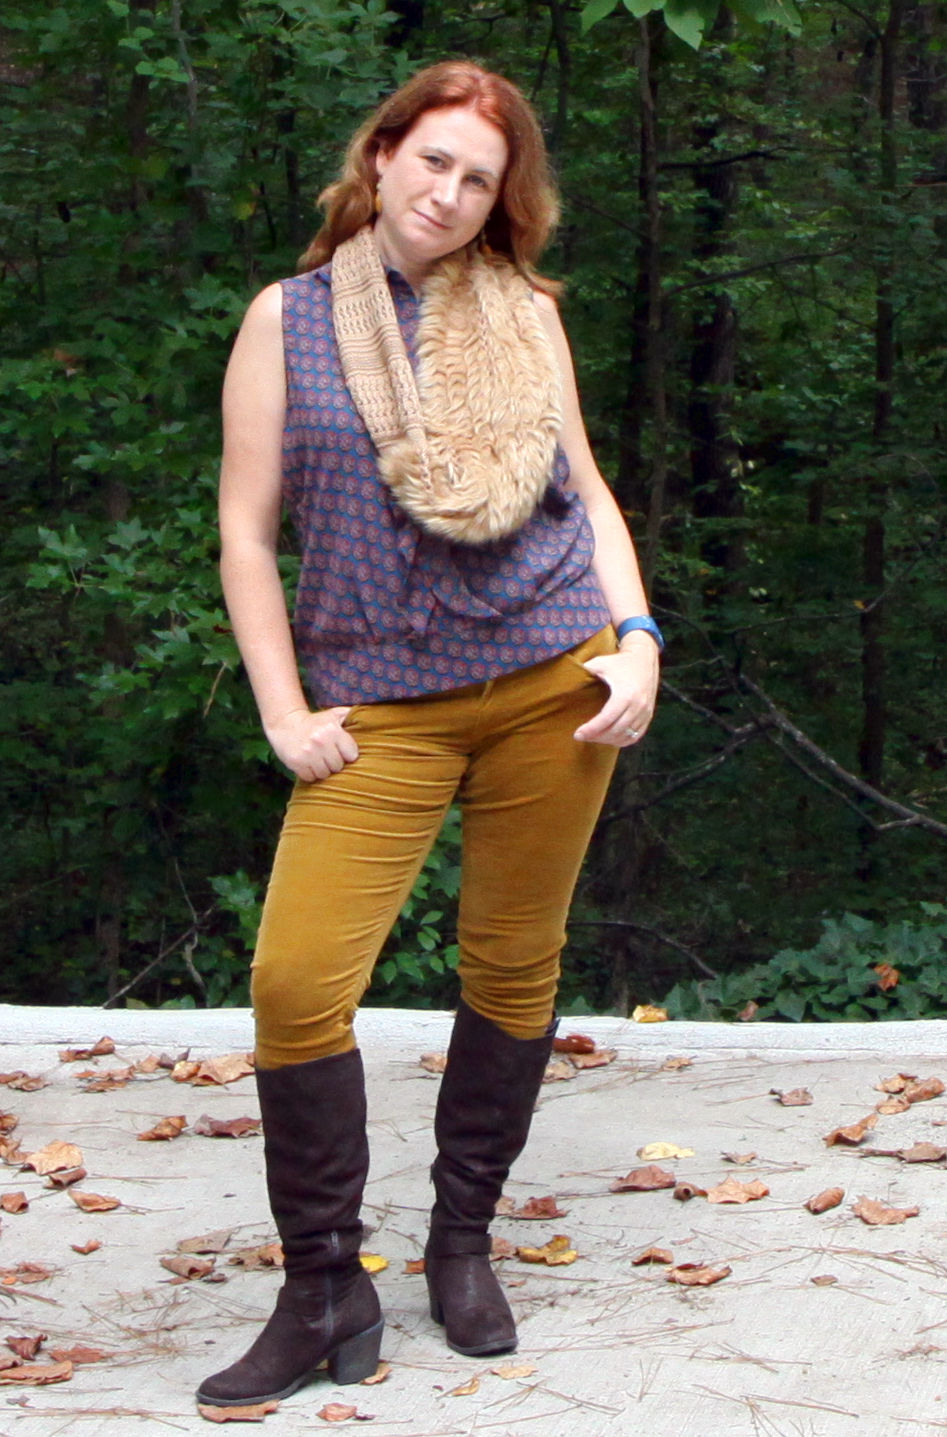 Medallion Reign Blouse, Skinny Cord, and the Duchess Scarf